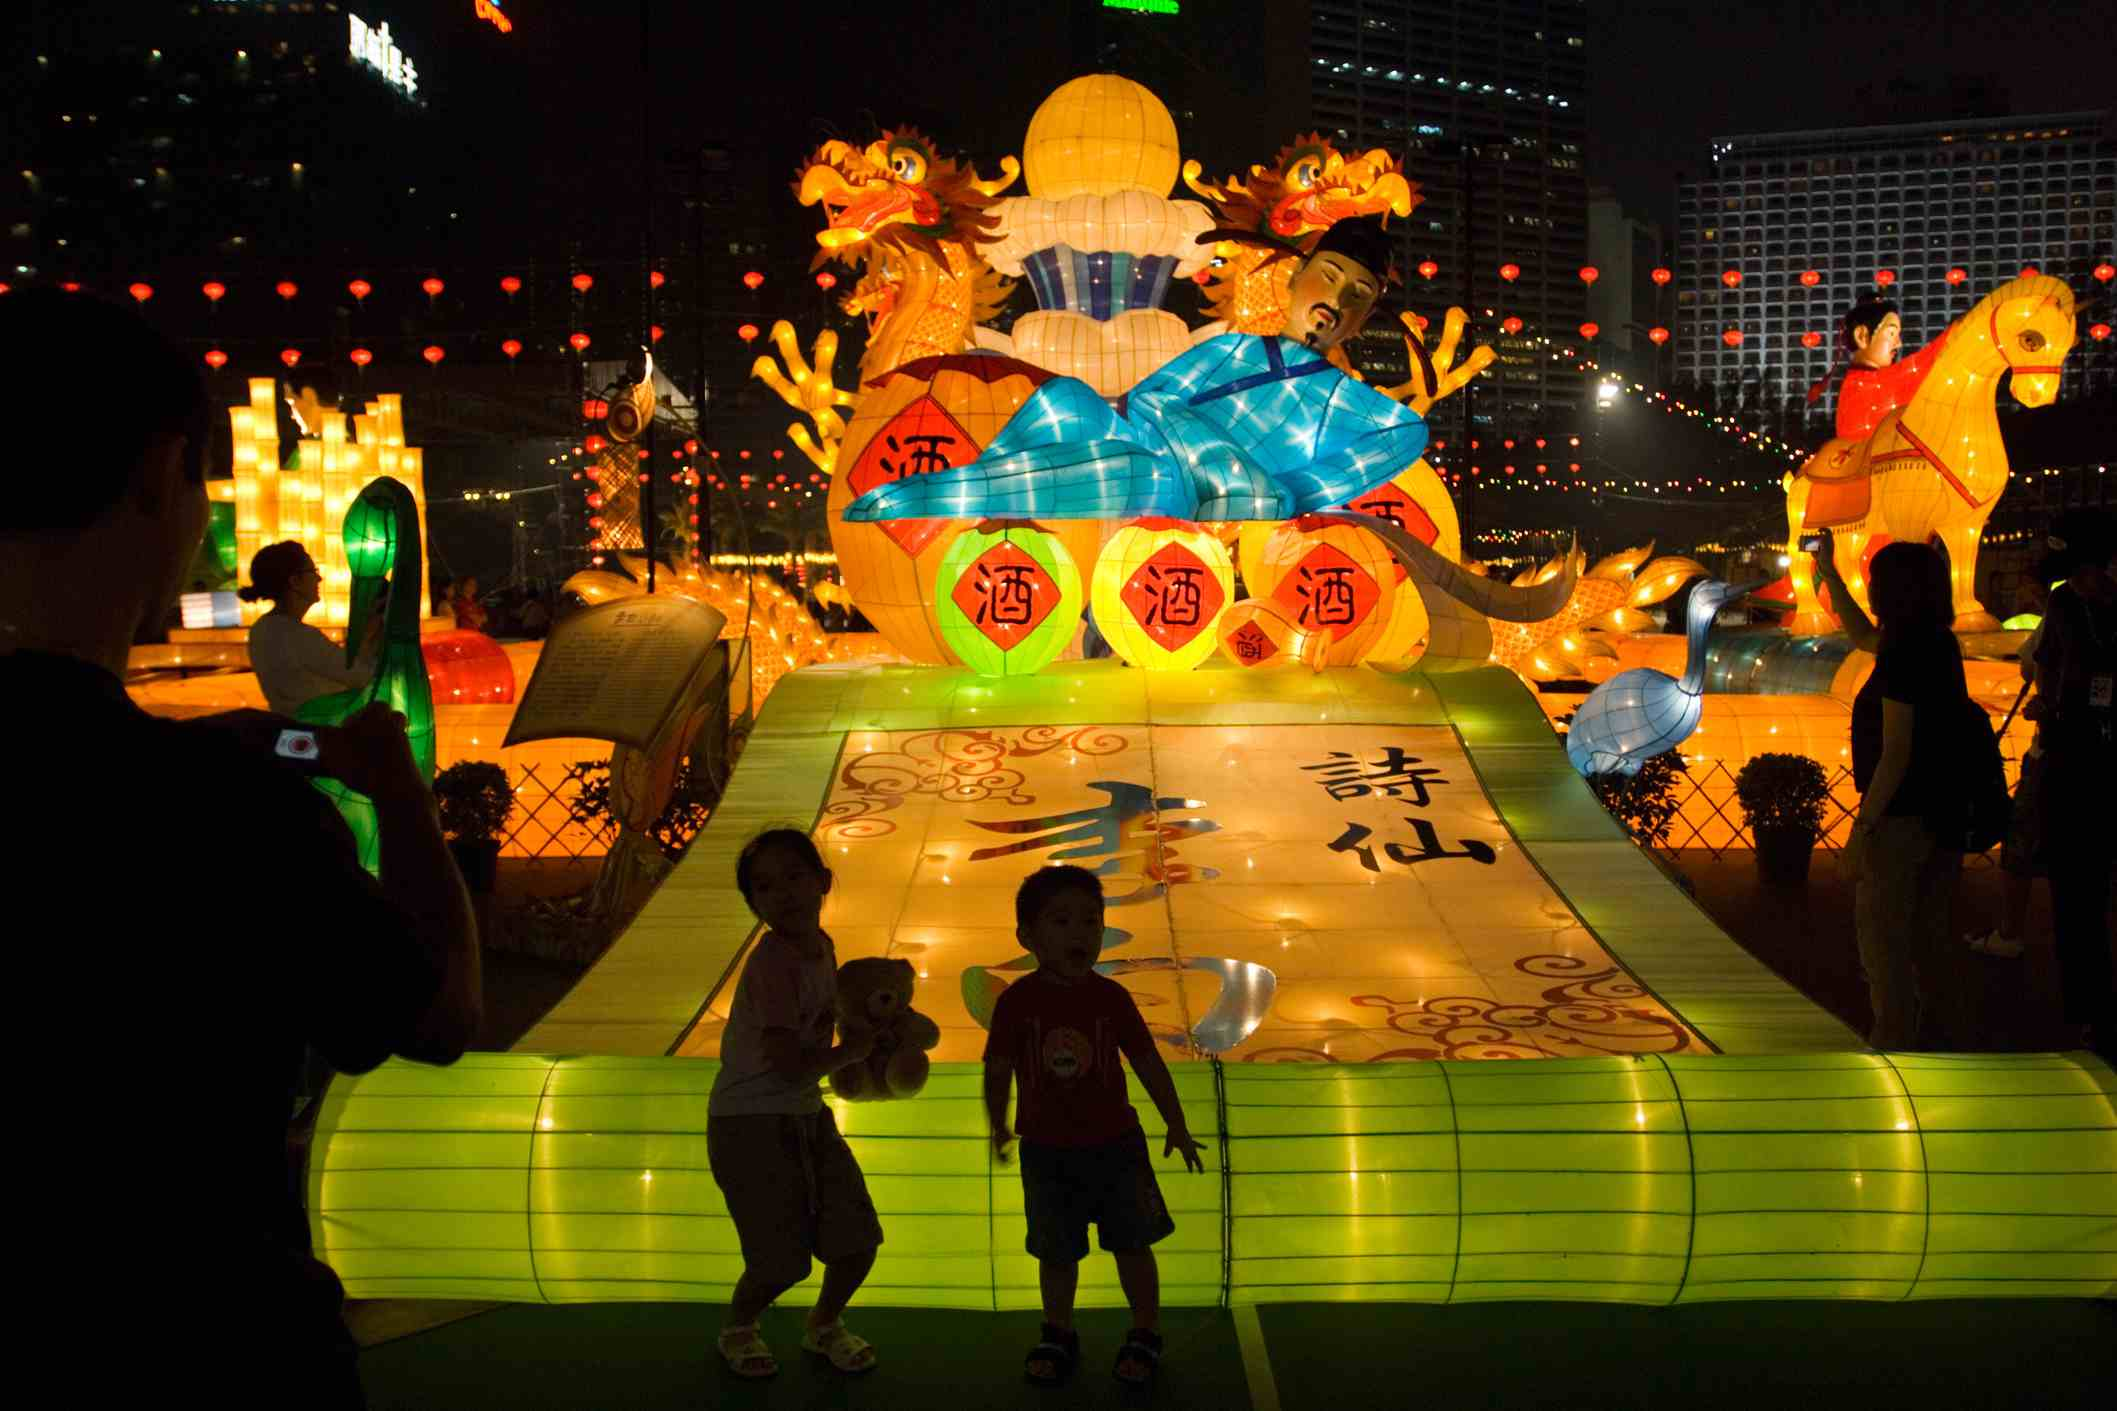 a33abf190 Children play near giant lanterns illuminated for the Mid-Autumn Festival  in Hong Kong